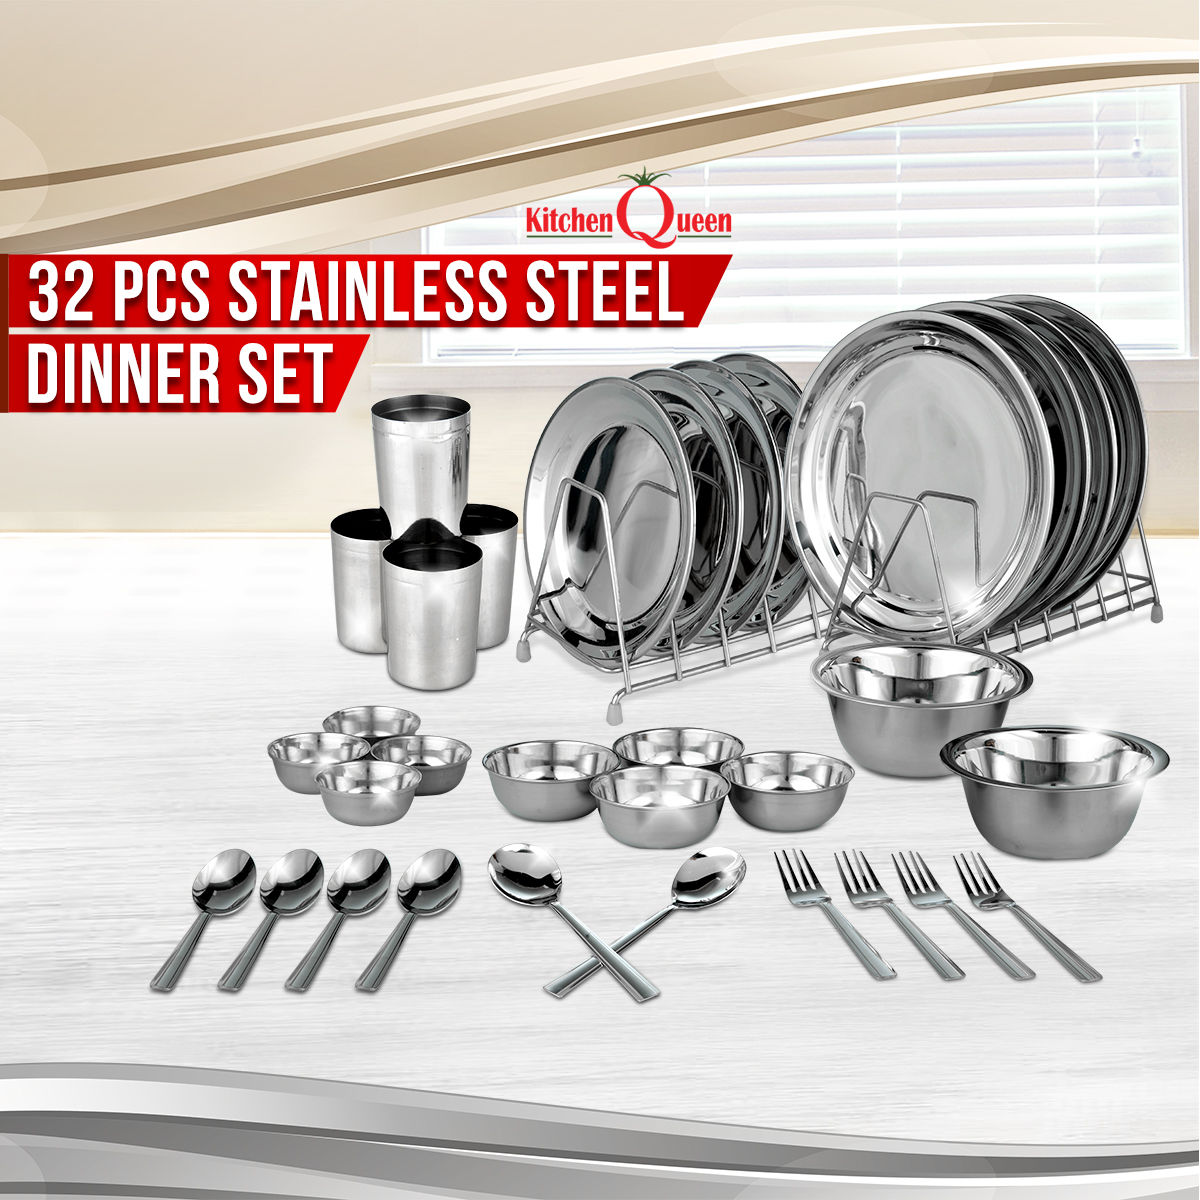 Buy 32 Pcs Stainless Steel Dinner Set Online At Best Price In India